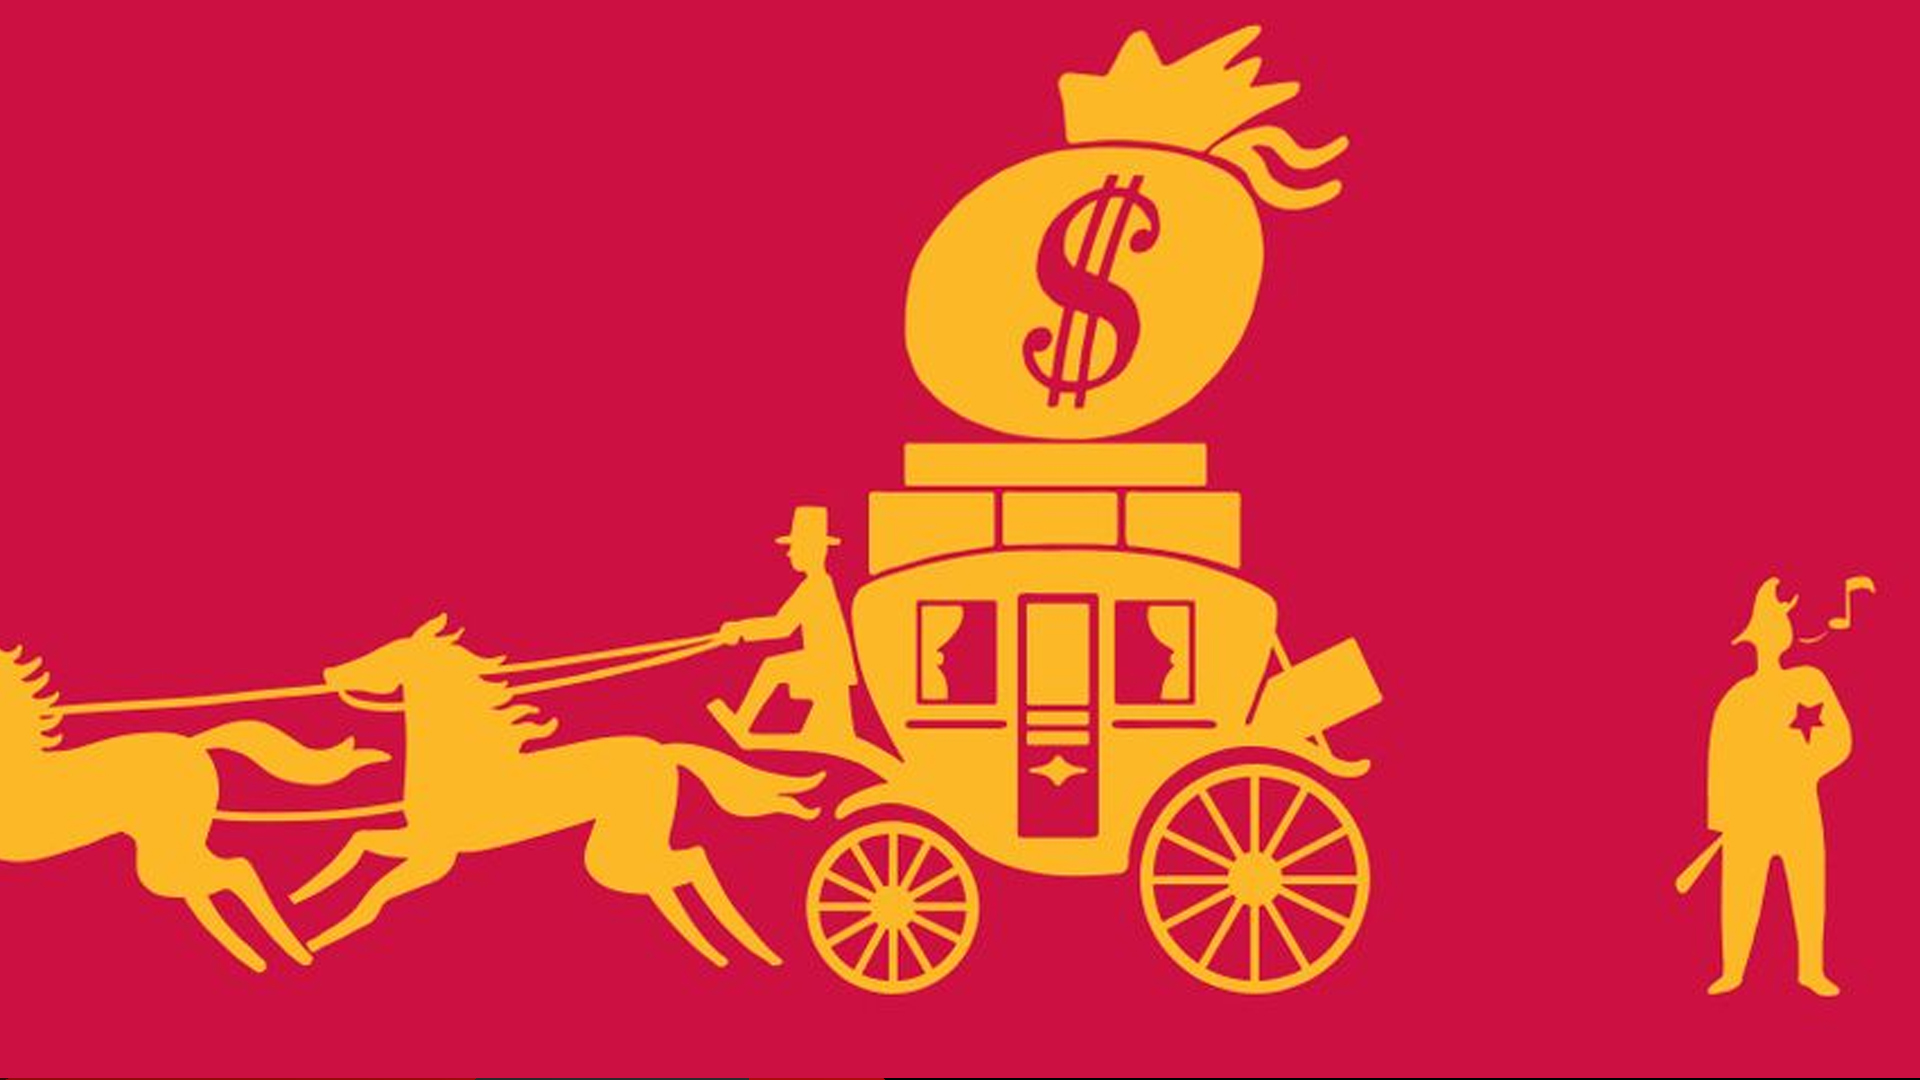 Wells Fargo Launches USD.